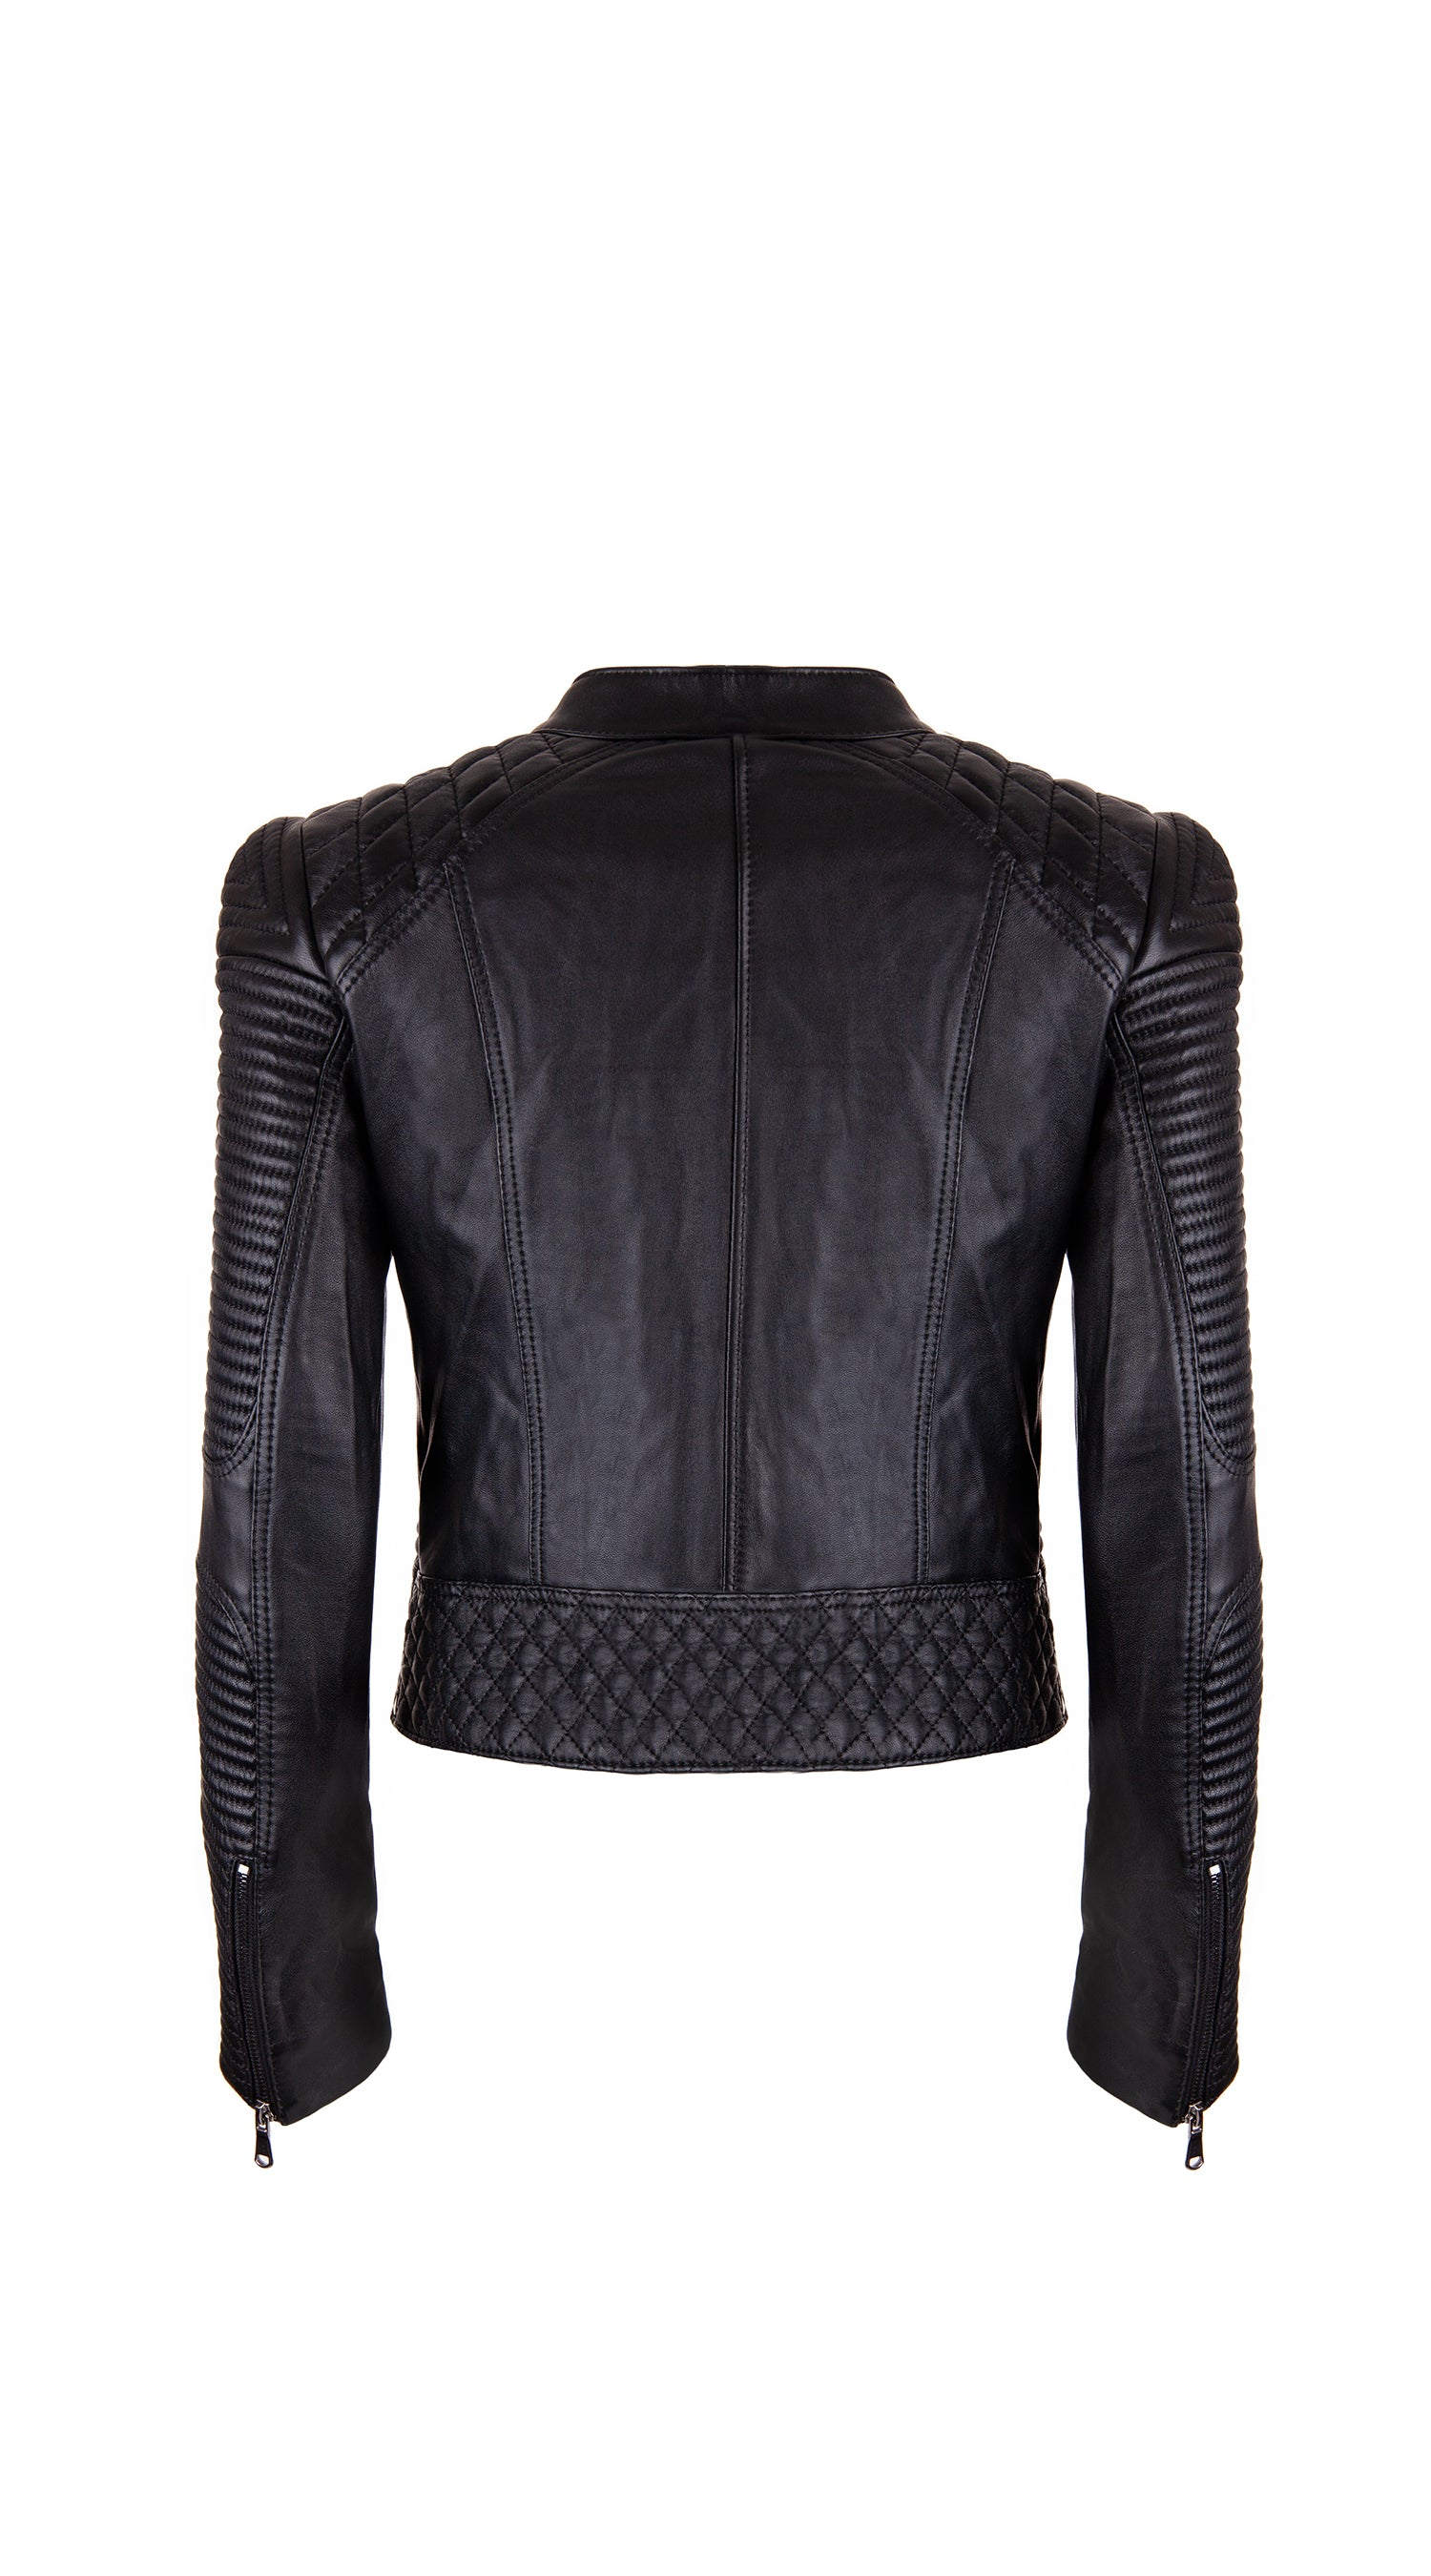 Stryder Leather Biker Jacket - Black